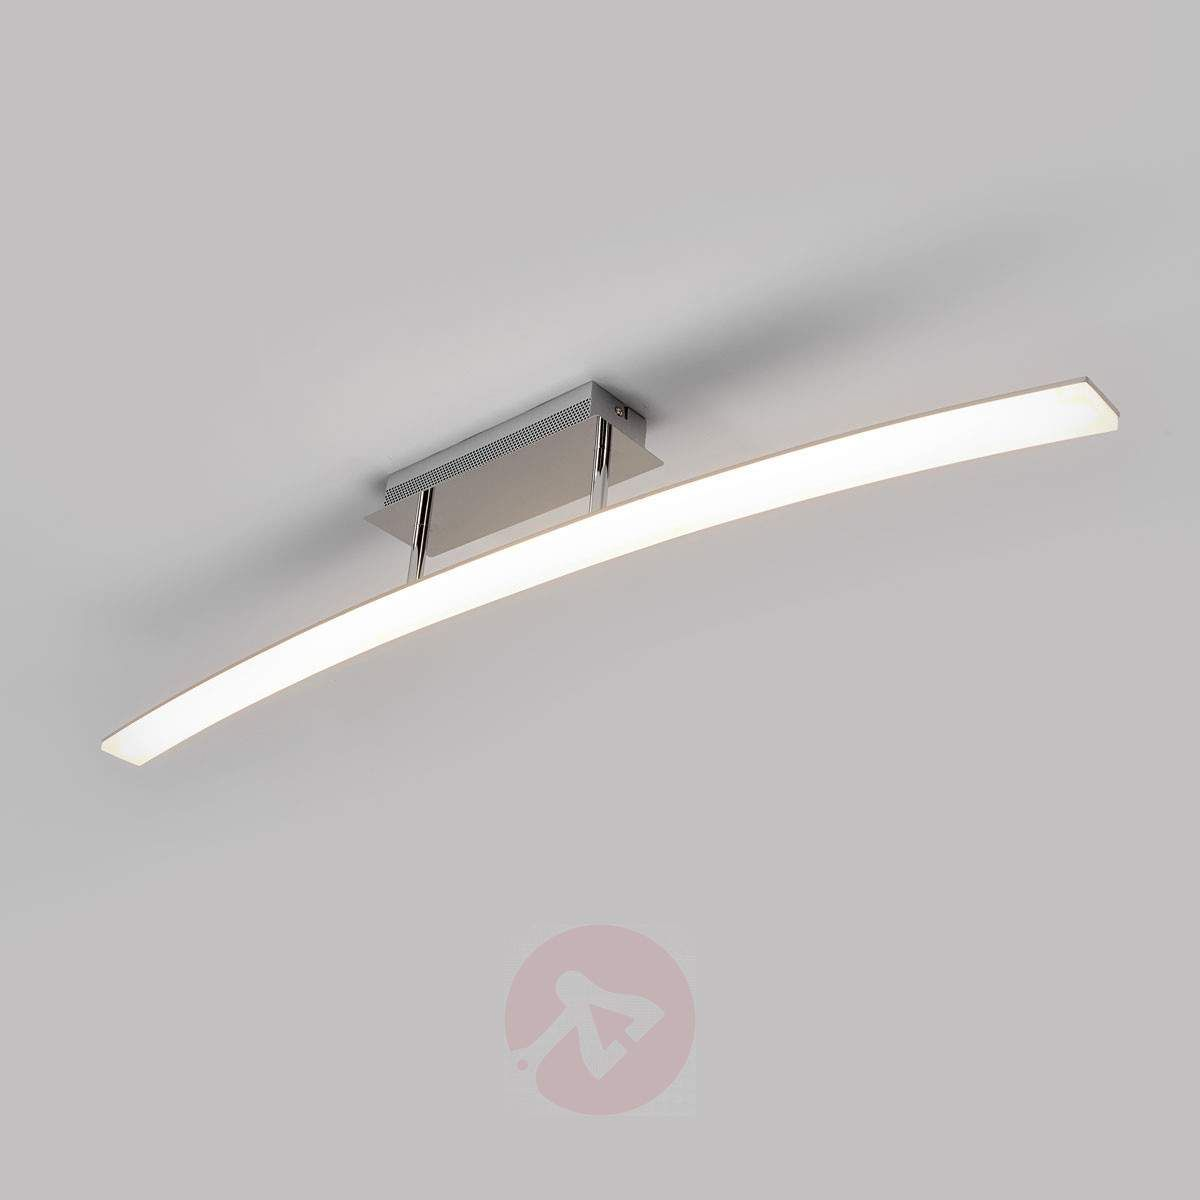 lighting for ceilings. lorian led ceiling light curved998400930 lighting for ceilings e